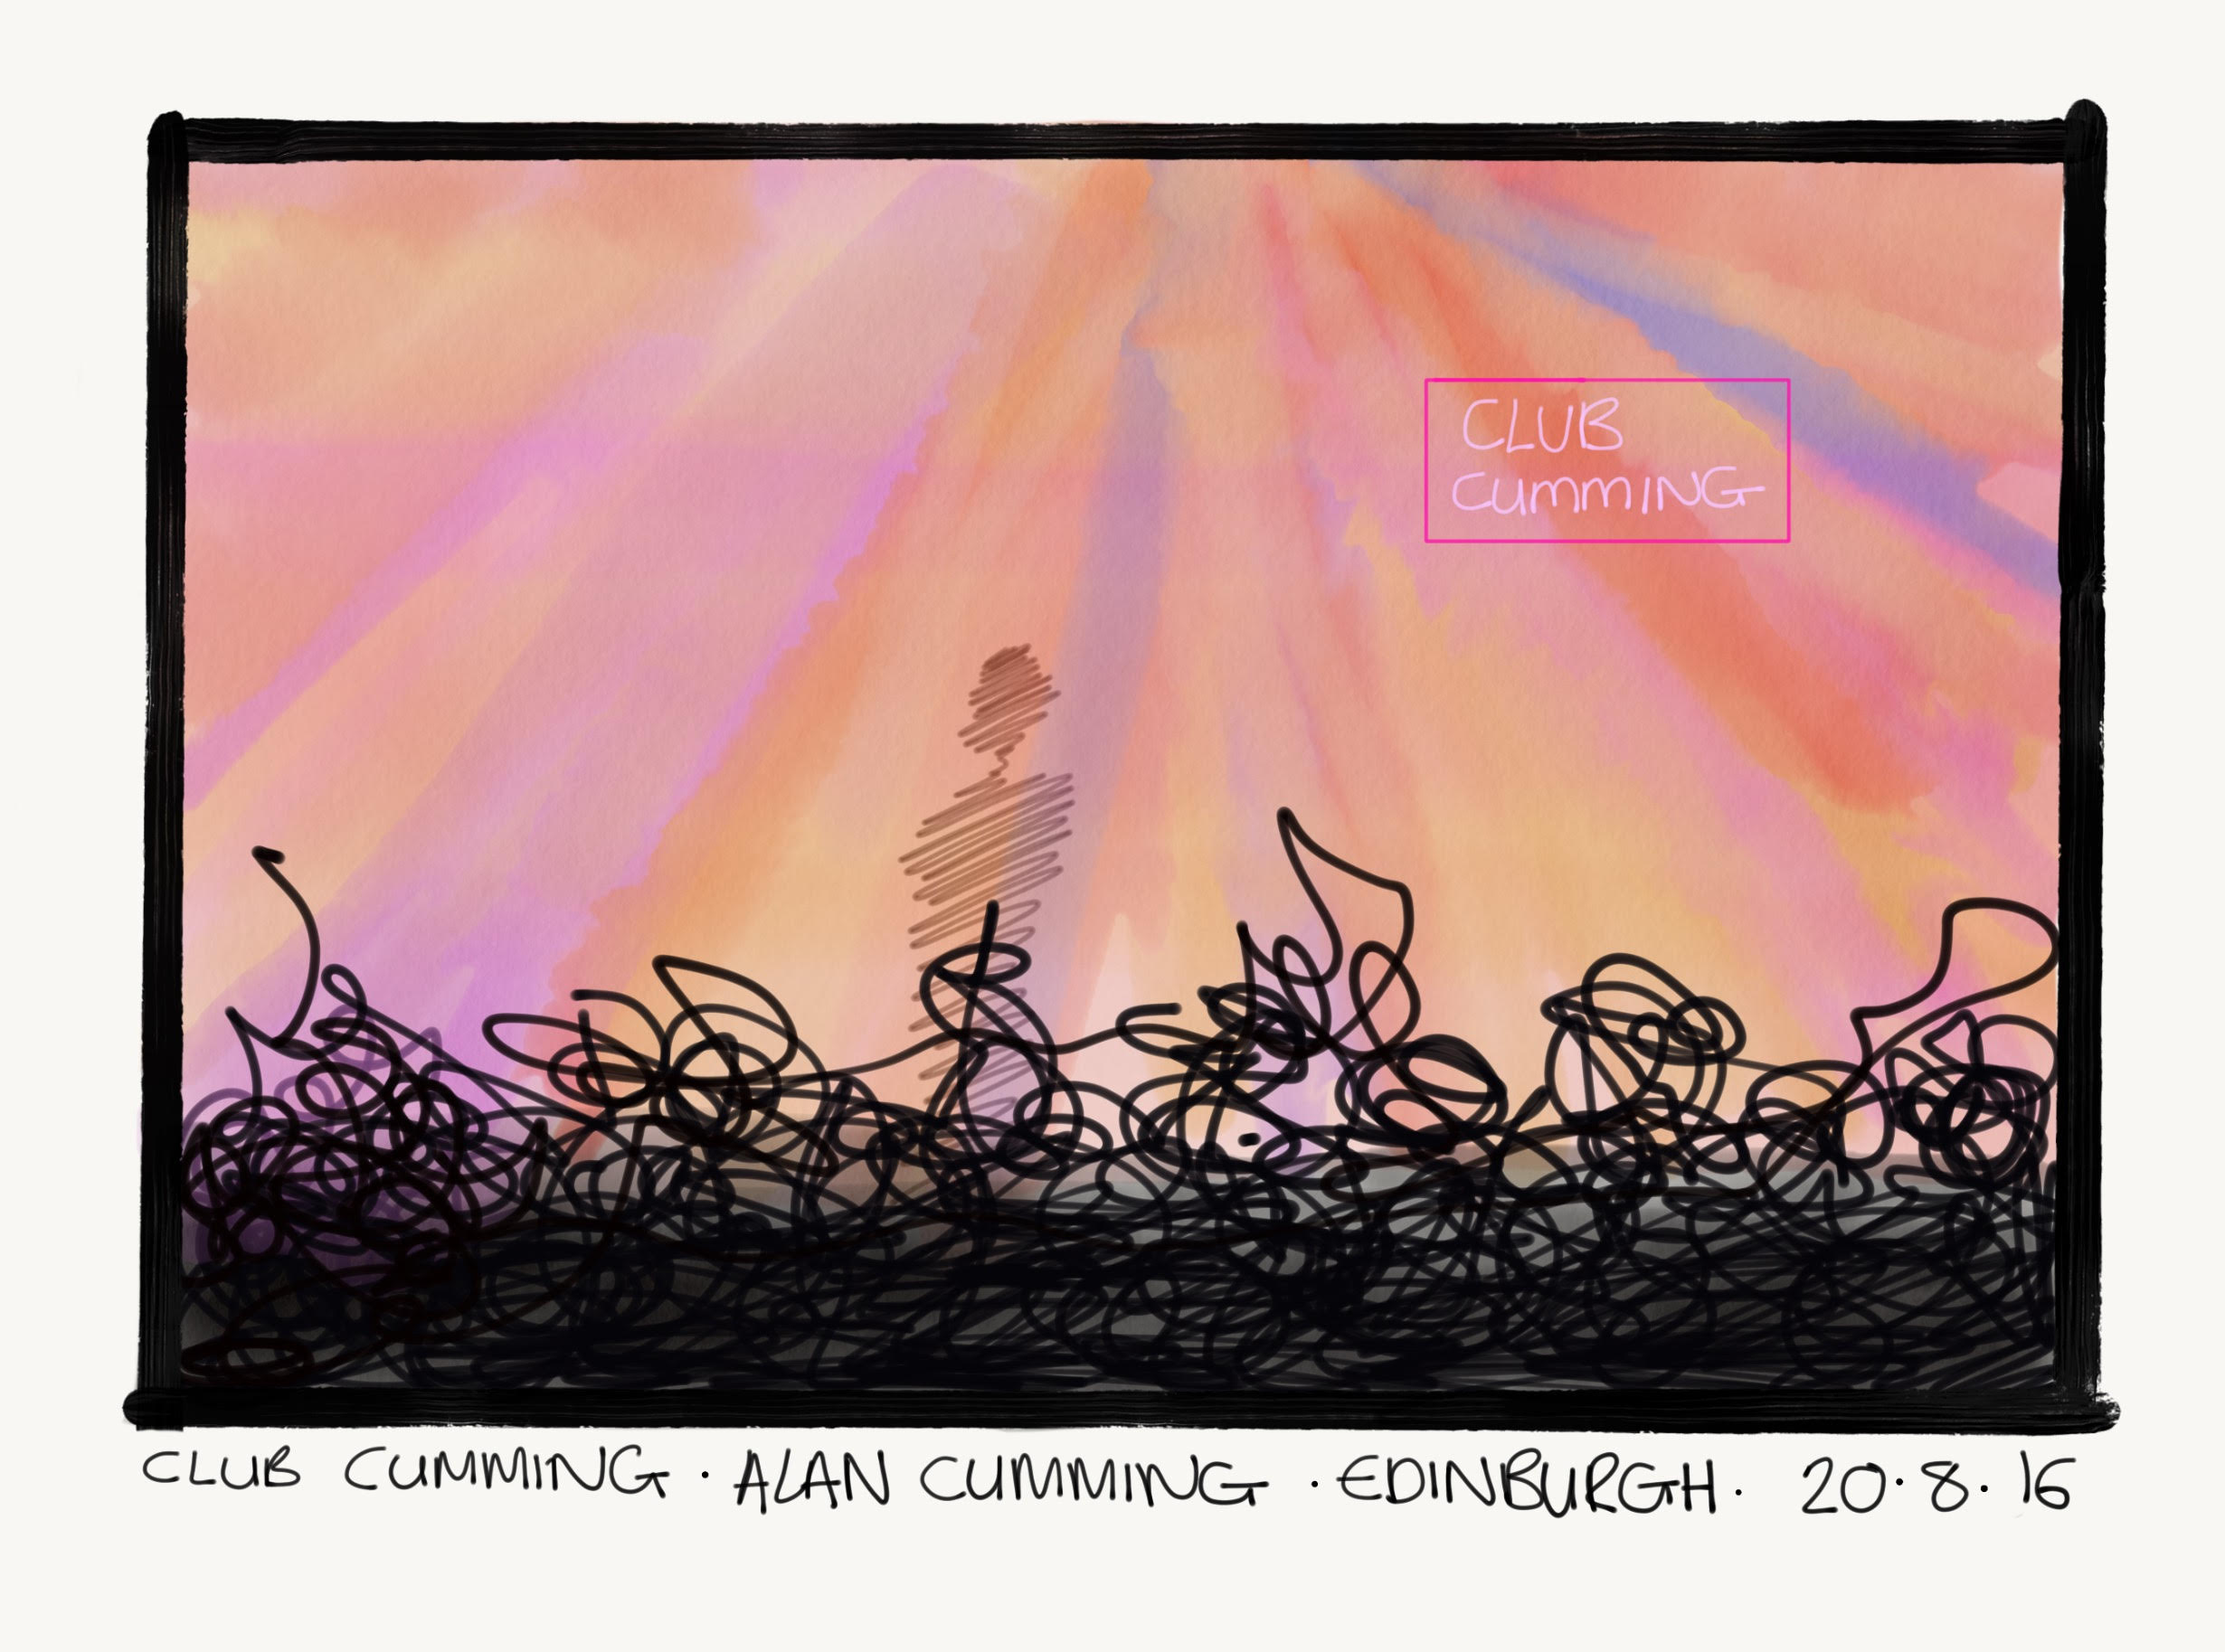 Club Cumming, by Alan Cumming